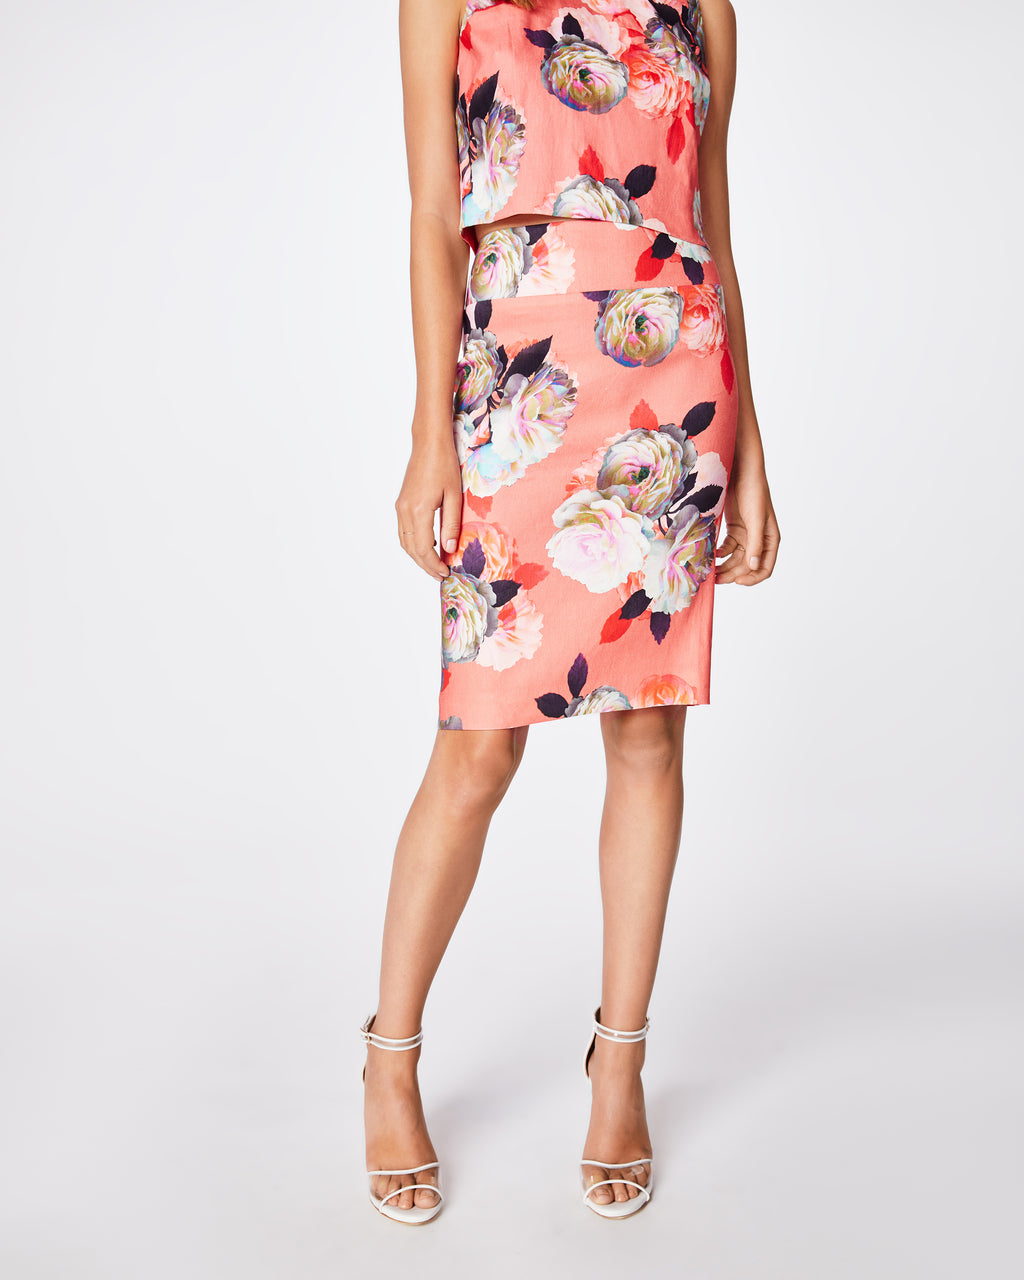 BD10266 - CONFETTI FLOWERS LINEN PENCIL SKIRT - bottoms - skirts - this fully lined, fitted coral floral skirts hits right above the knee. it's a great and easy go to skirt for the spring. pair back with the matching linen crop top for a full look.